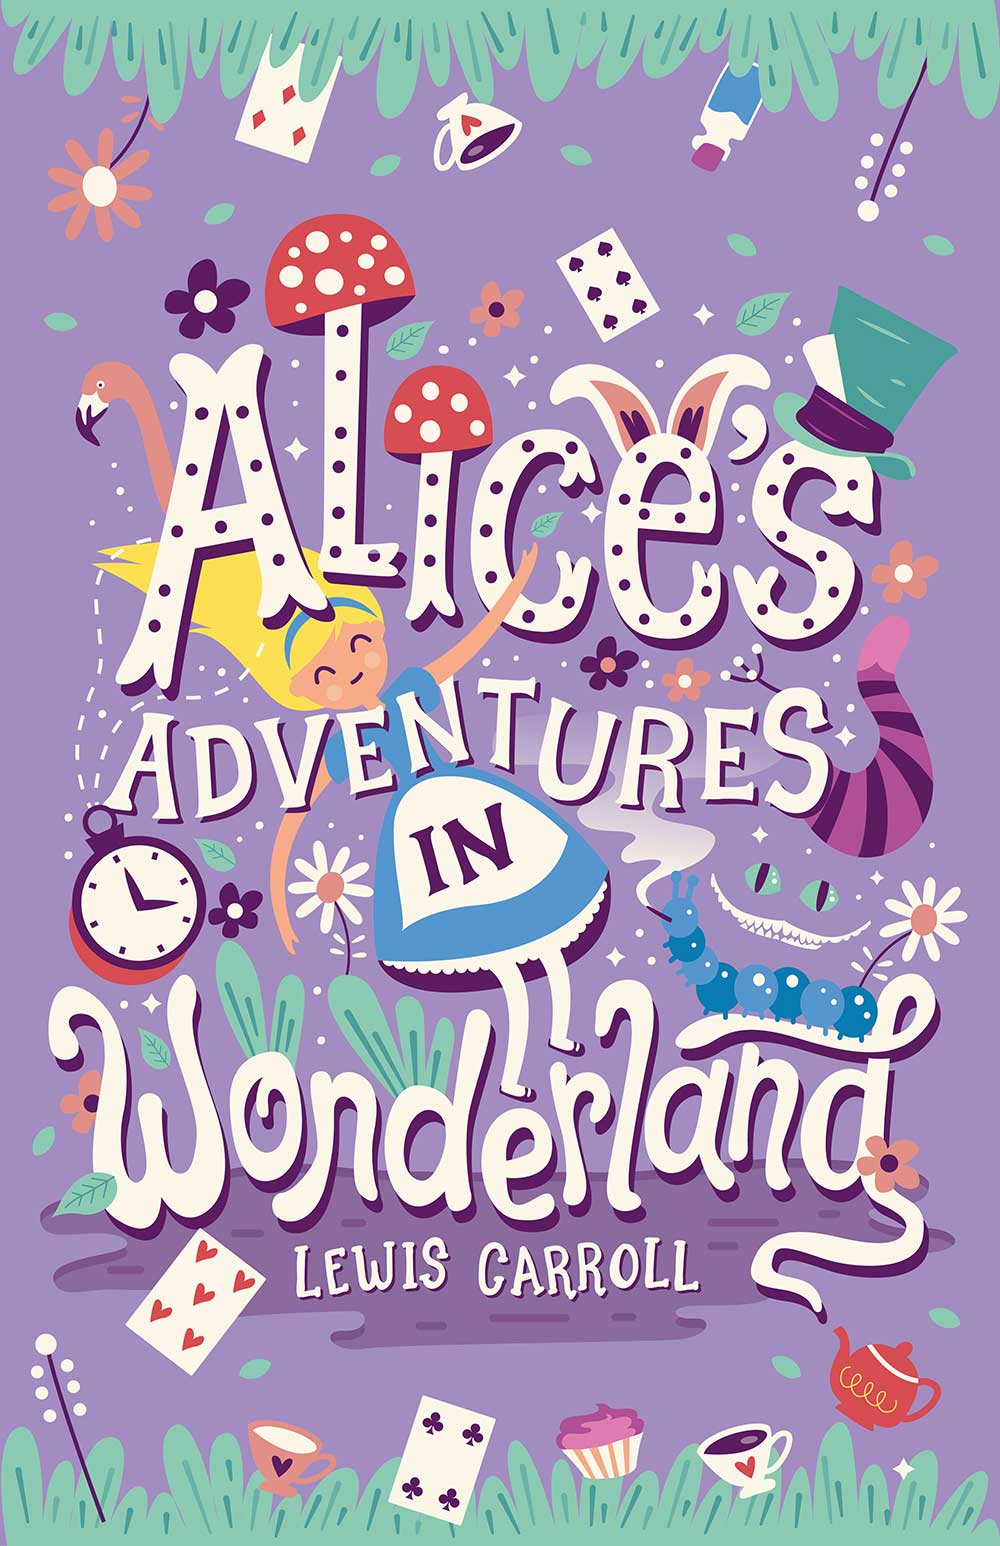 Friends Series Quotes Wallpaper Alice S Adventures In Wonderland Risa Rodil